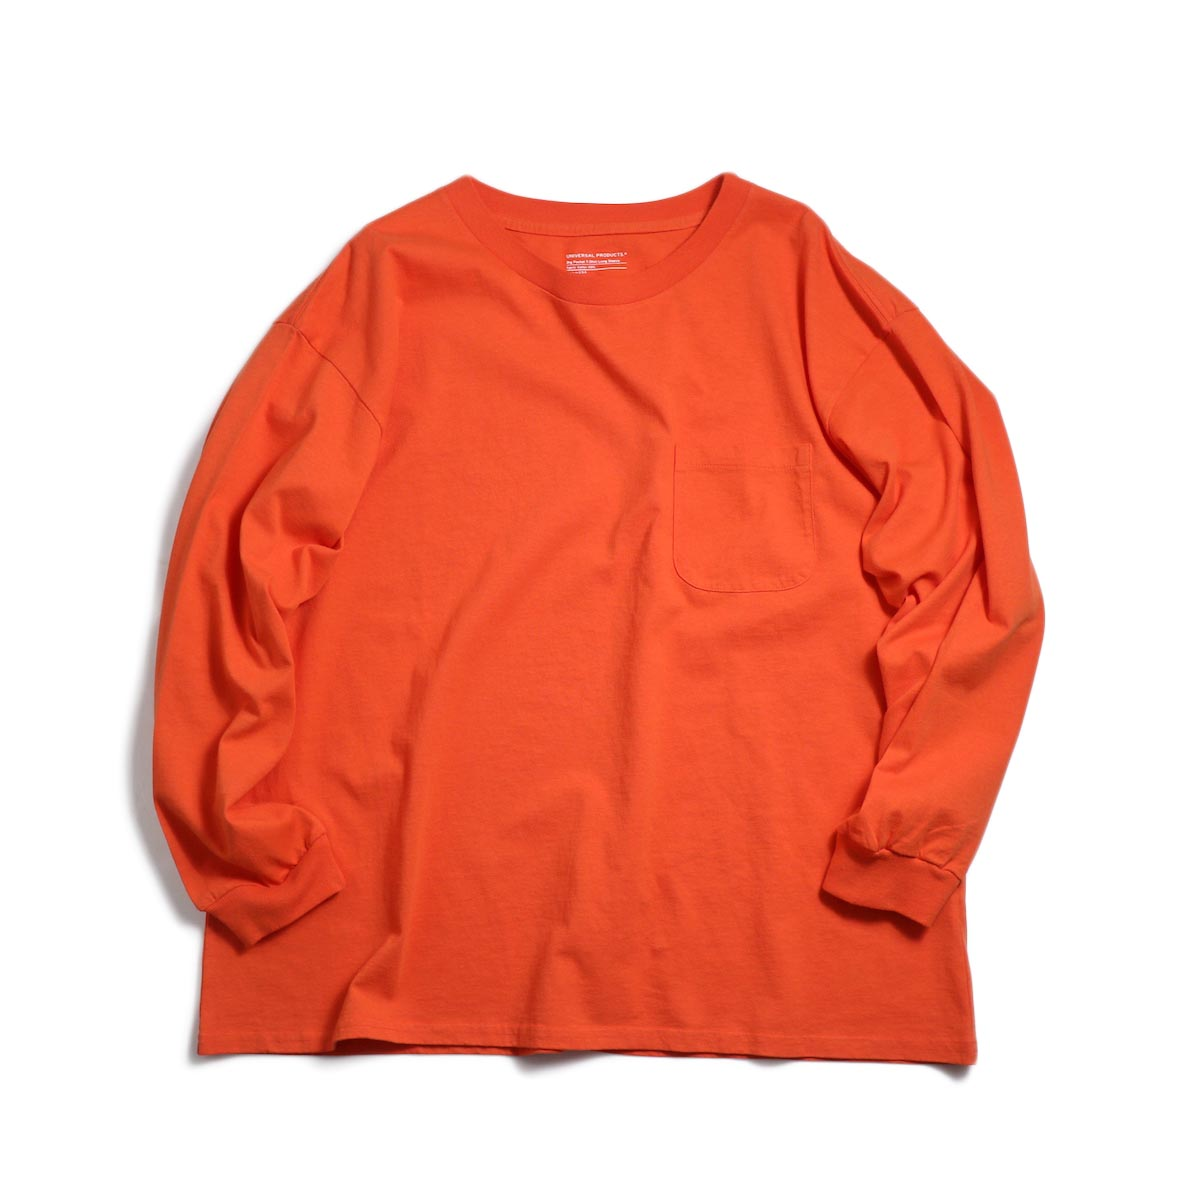 UNIVERSAL PRODUCTS / Heavy Weight L/S T-Shirt -Orange